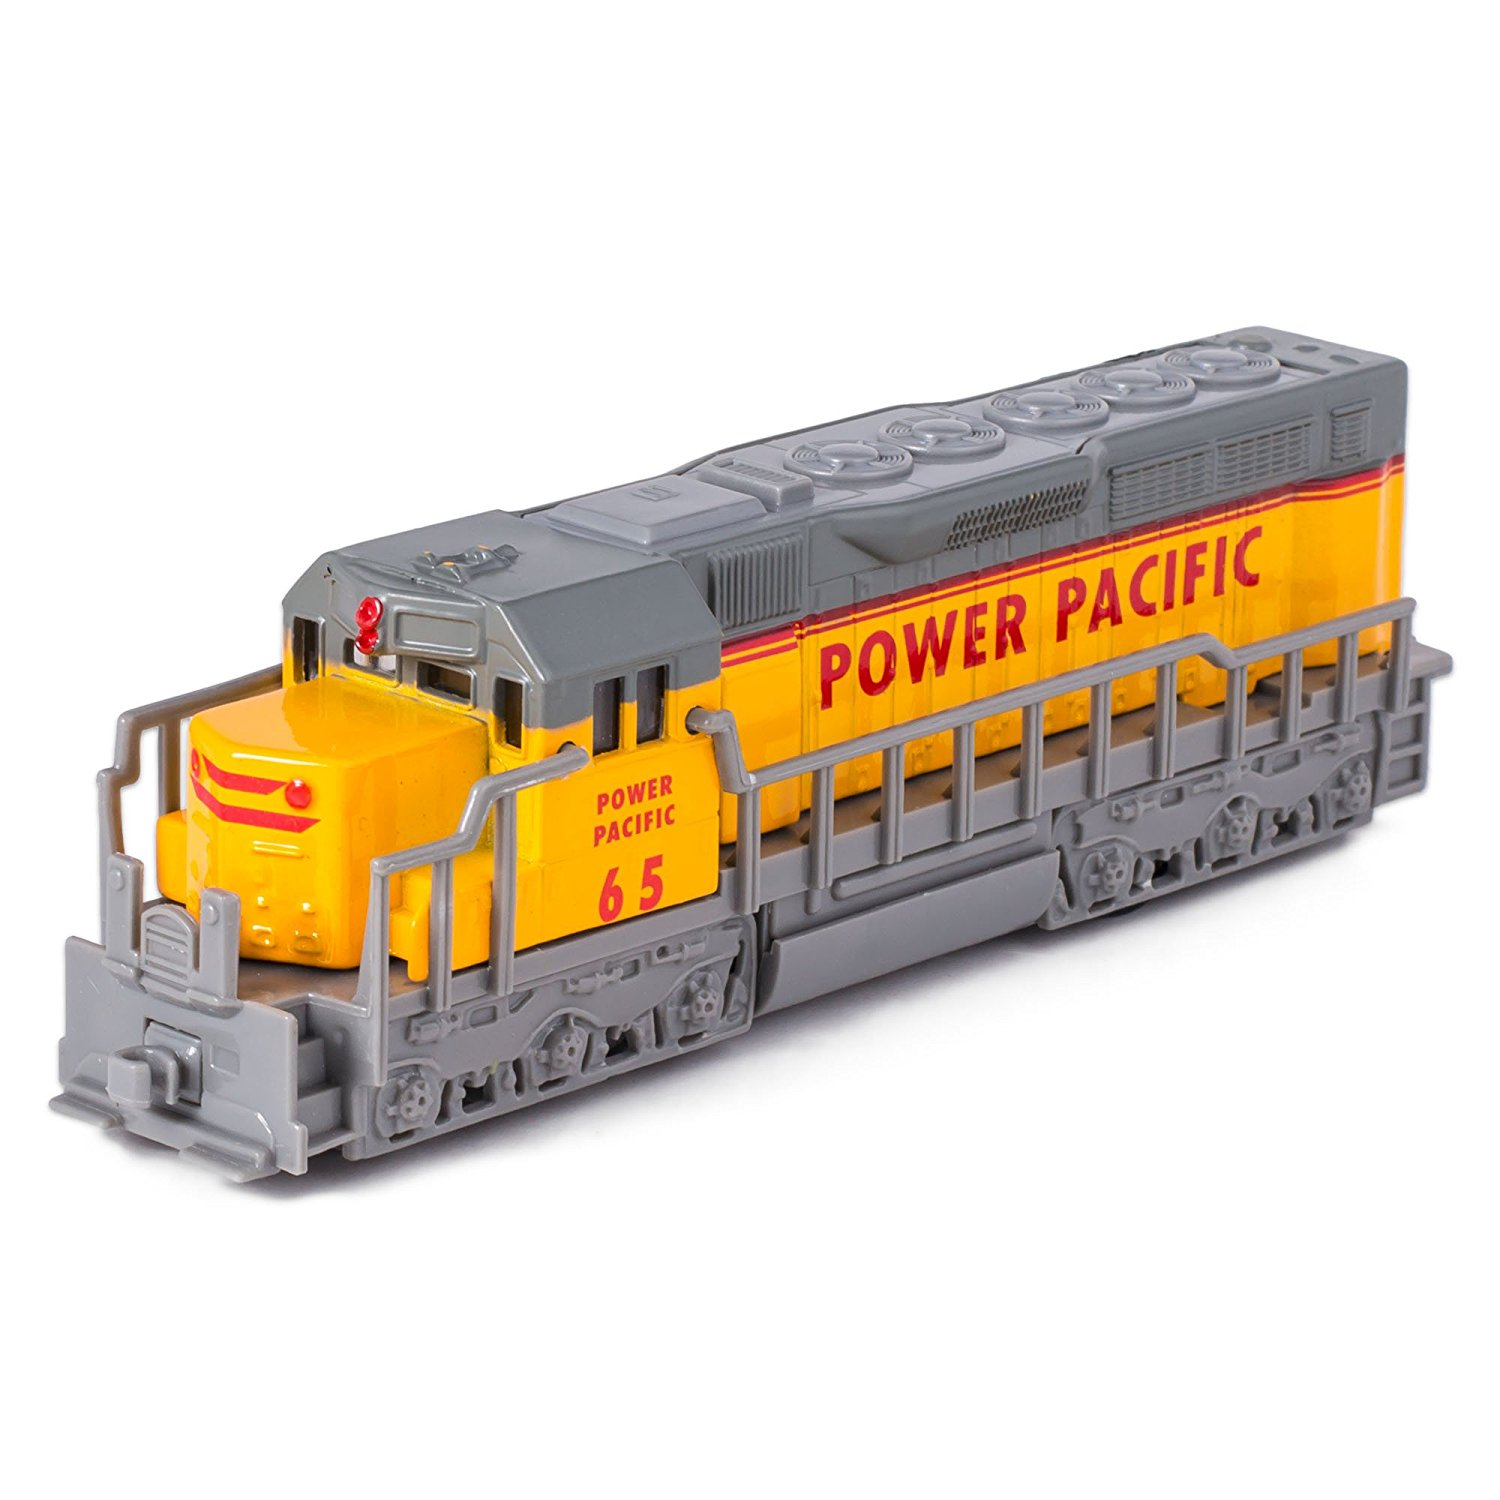 "7"" Yellow Die Cast Freight Train Locomotive Toy with Pull Back Action"